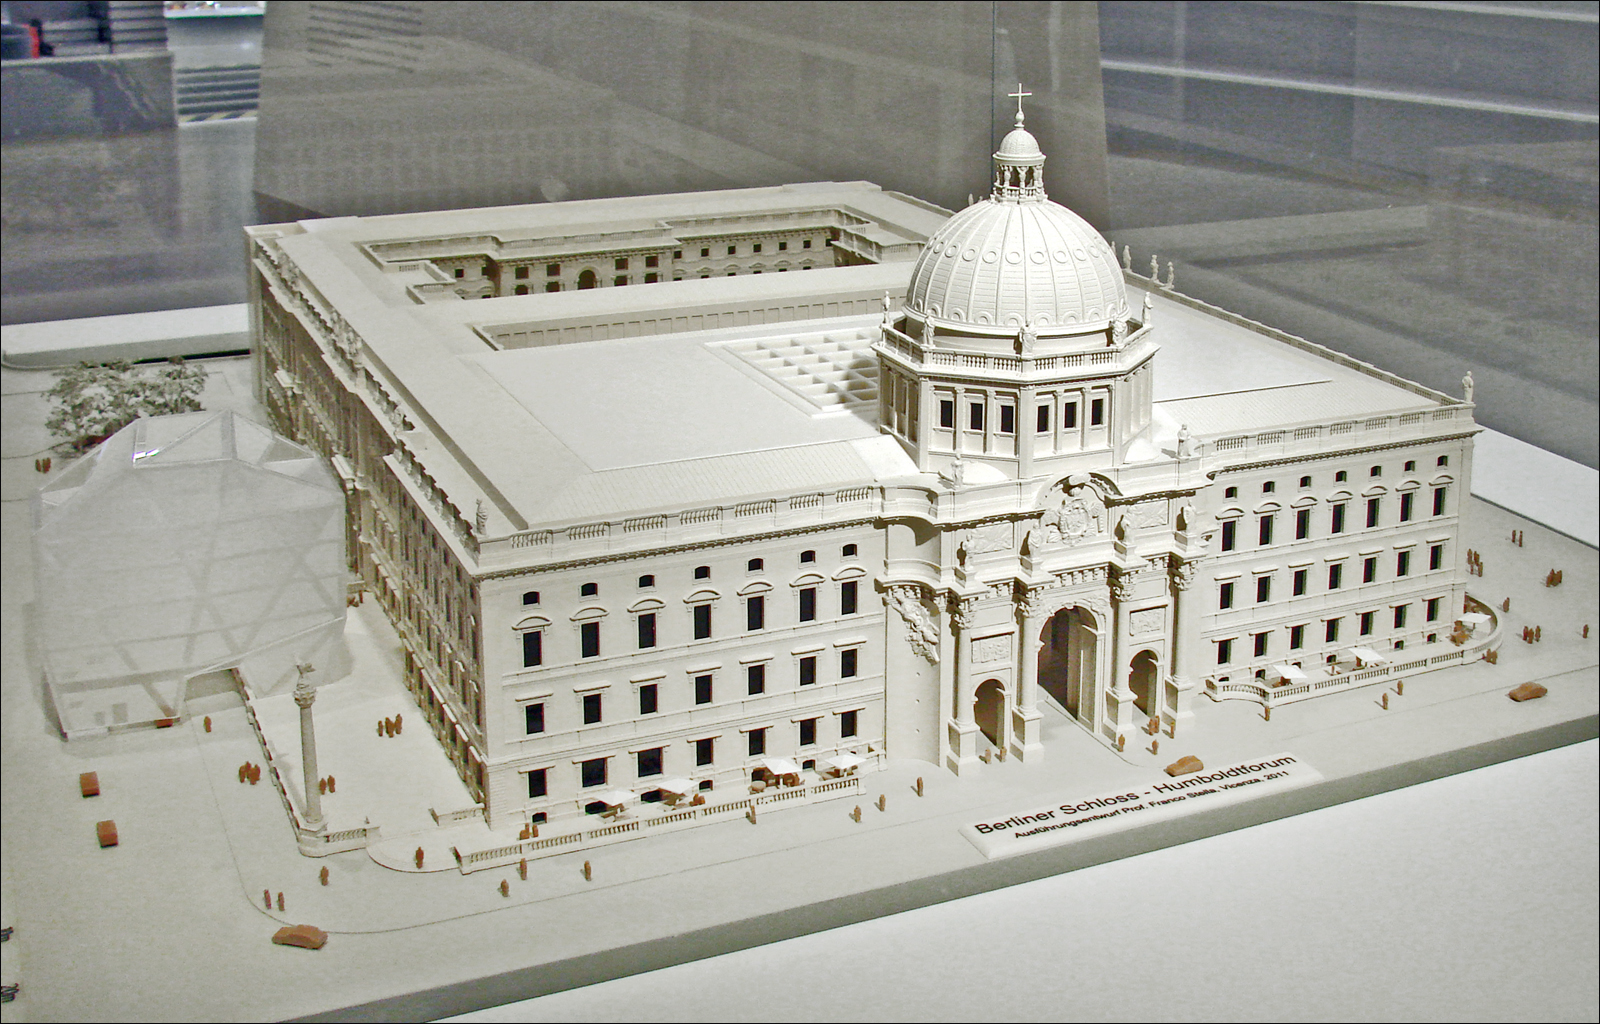 Architectural model of the new building for the Humboldt Forum.